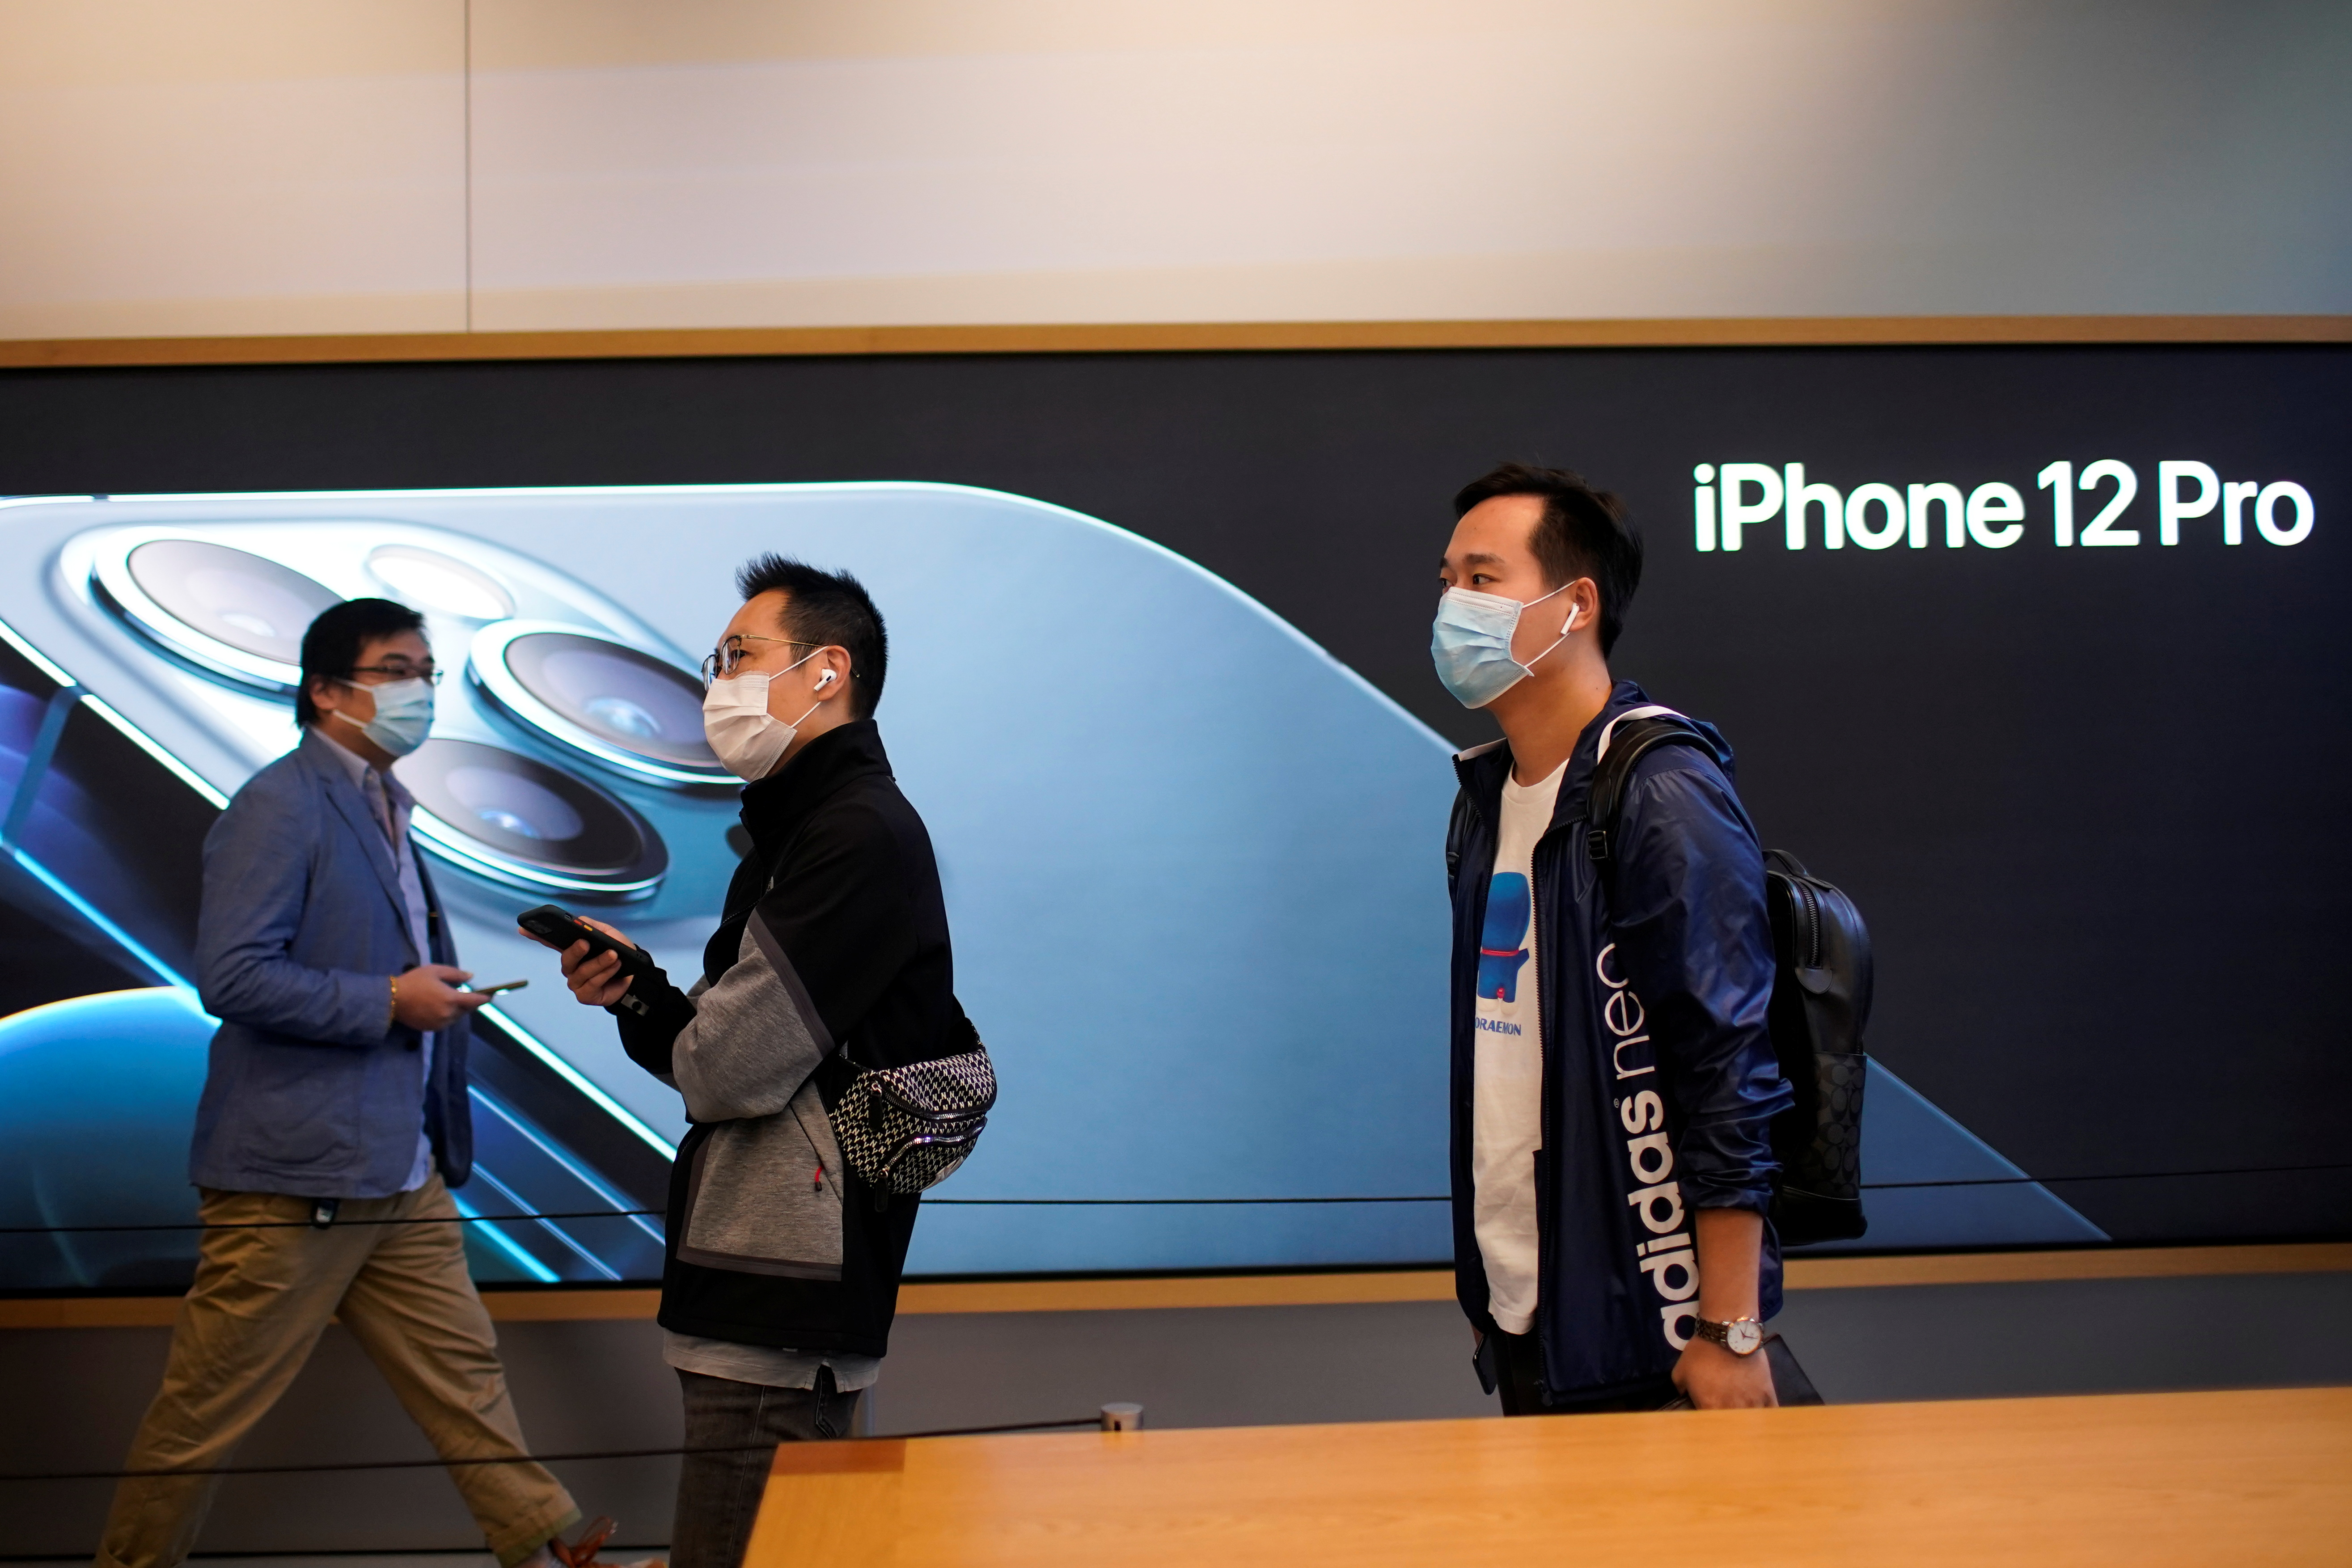 People wearing face masks wait at an Apple Store before Apple's 5G new iPhone 12 go on sale, as the coronavirus disease (COVID-19) outbreak continues in Shanghai China October 23, 2020. REUTERS/Aly Song